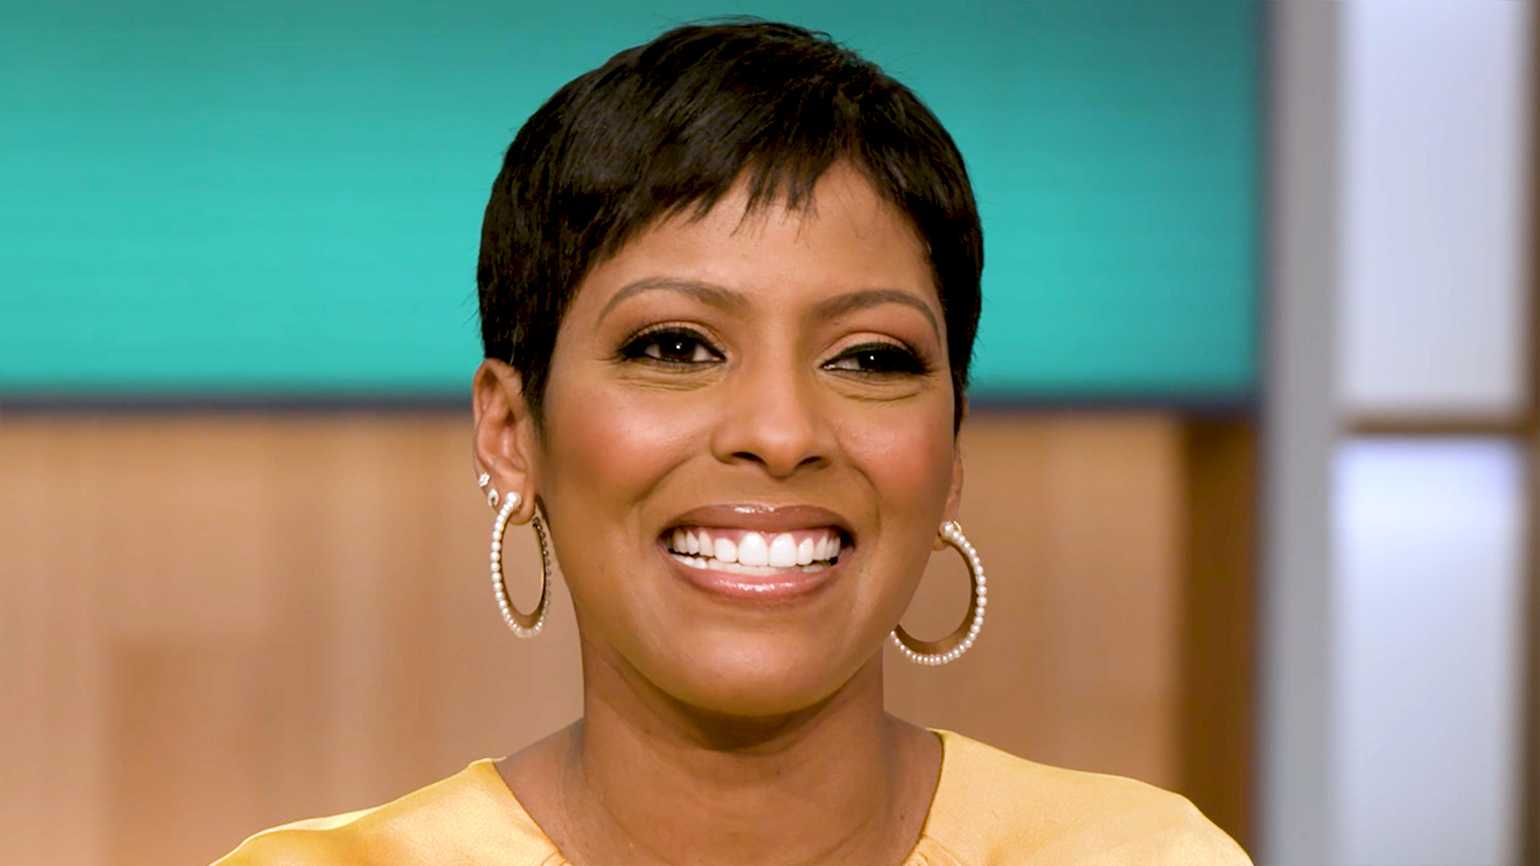 Journalist and broadcaster Tamron Hall